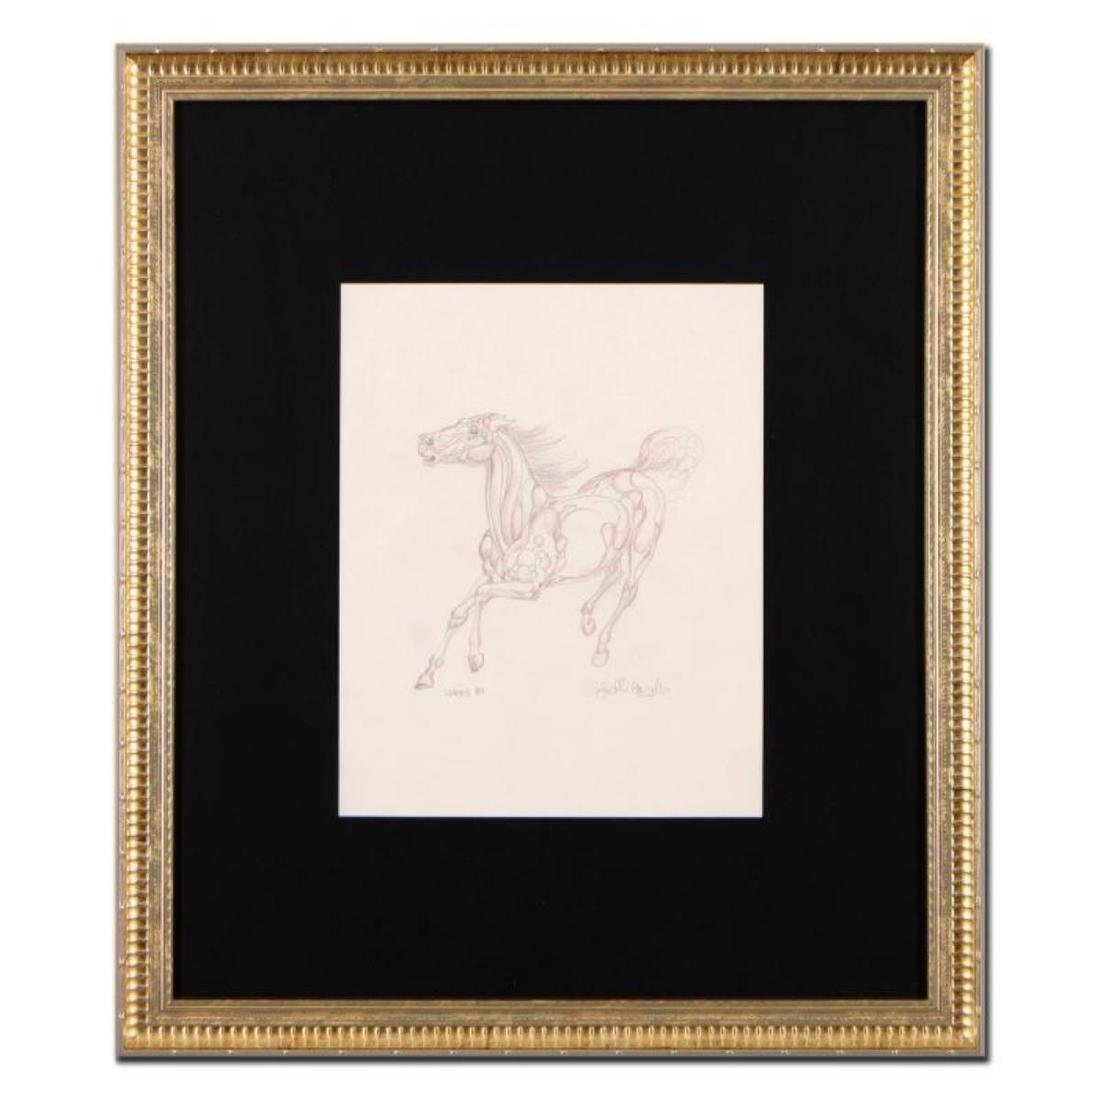 "Guillaume Azoulay - ""BS Sketch"" Framed Original"